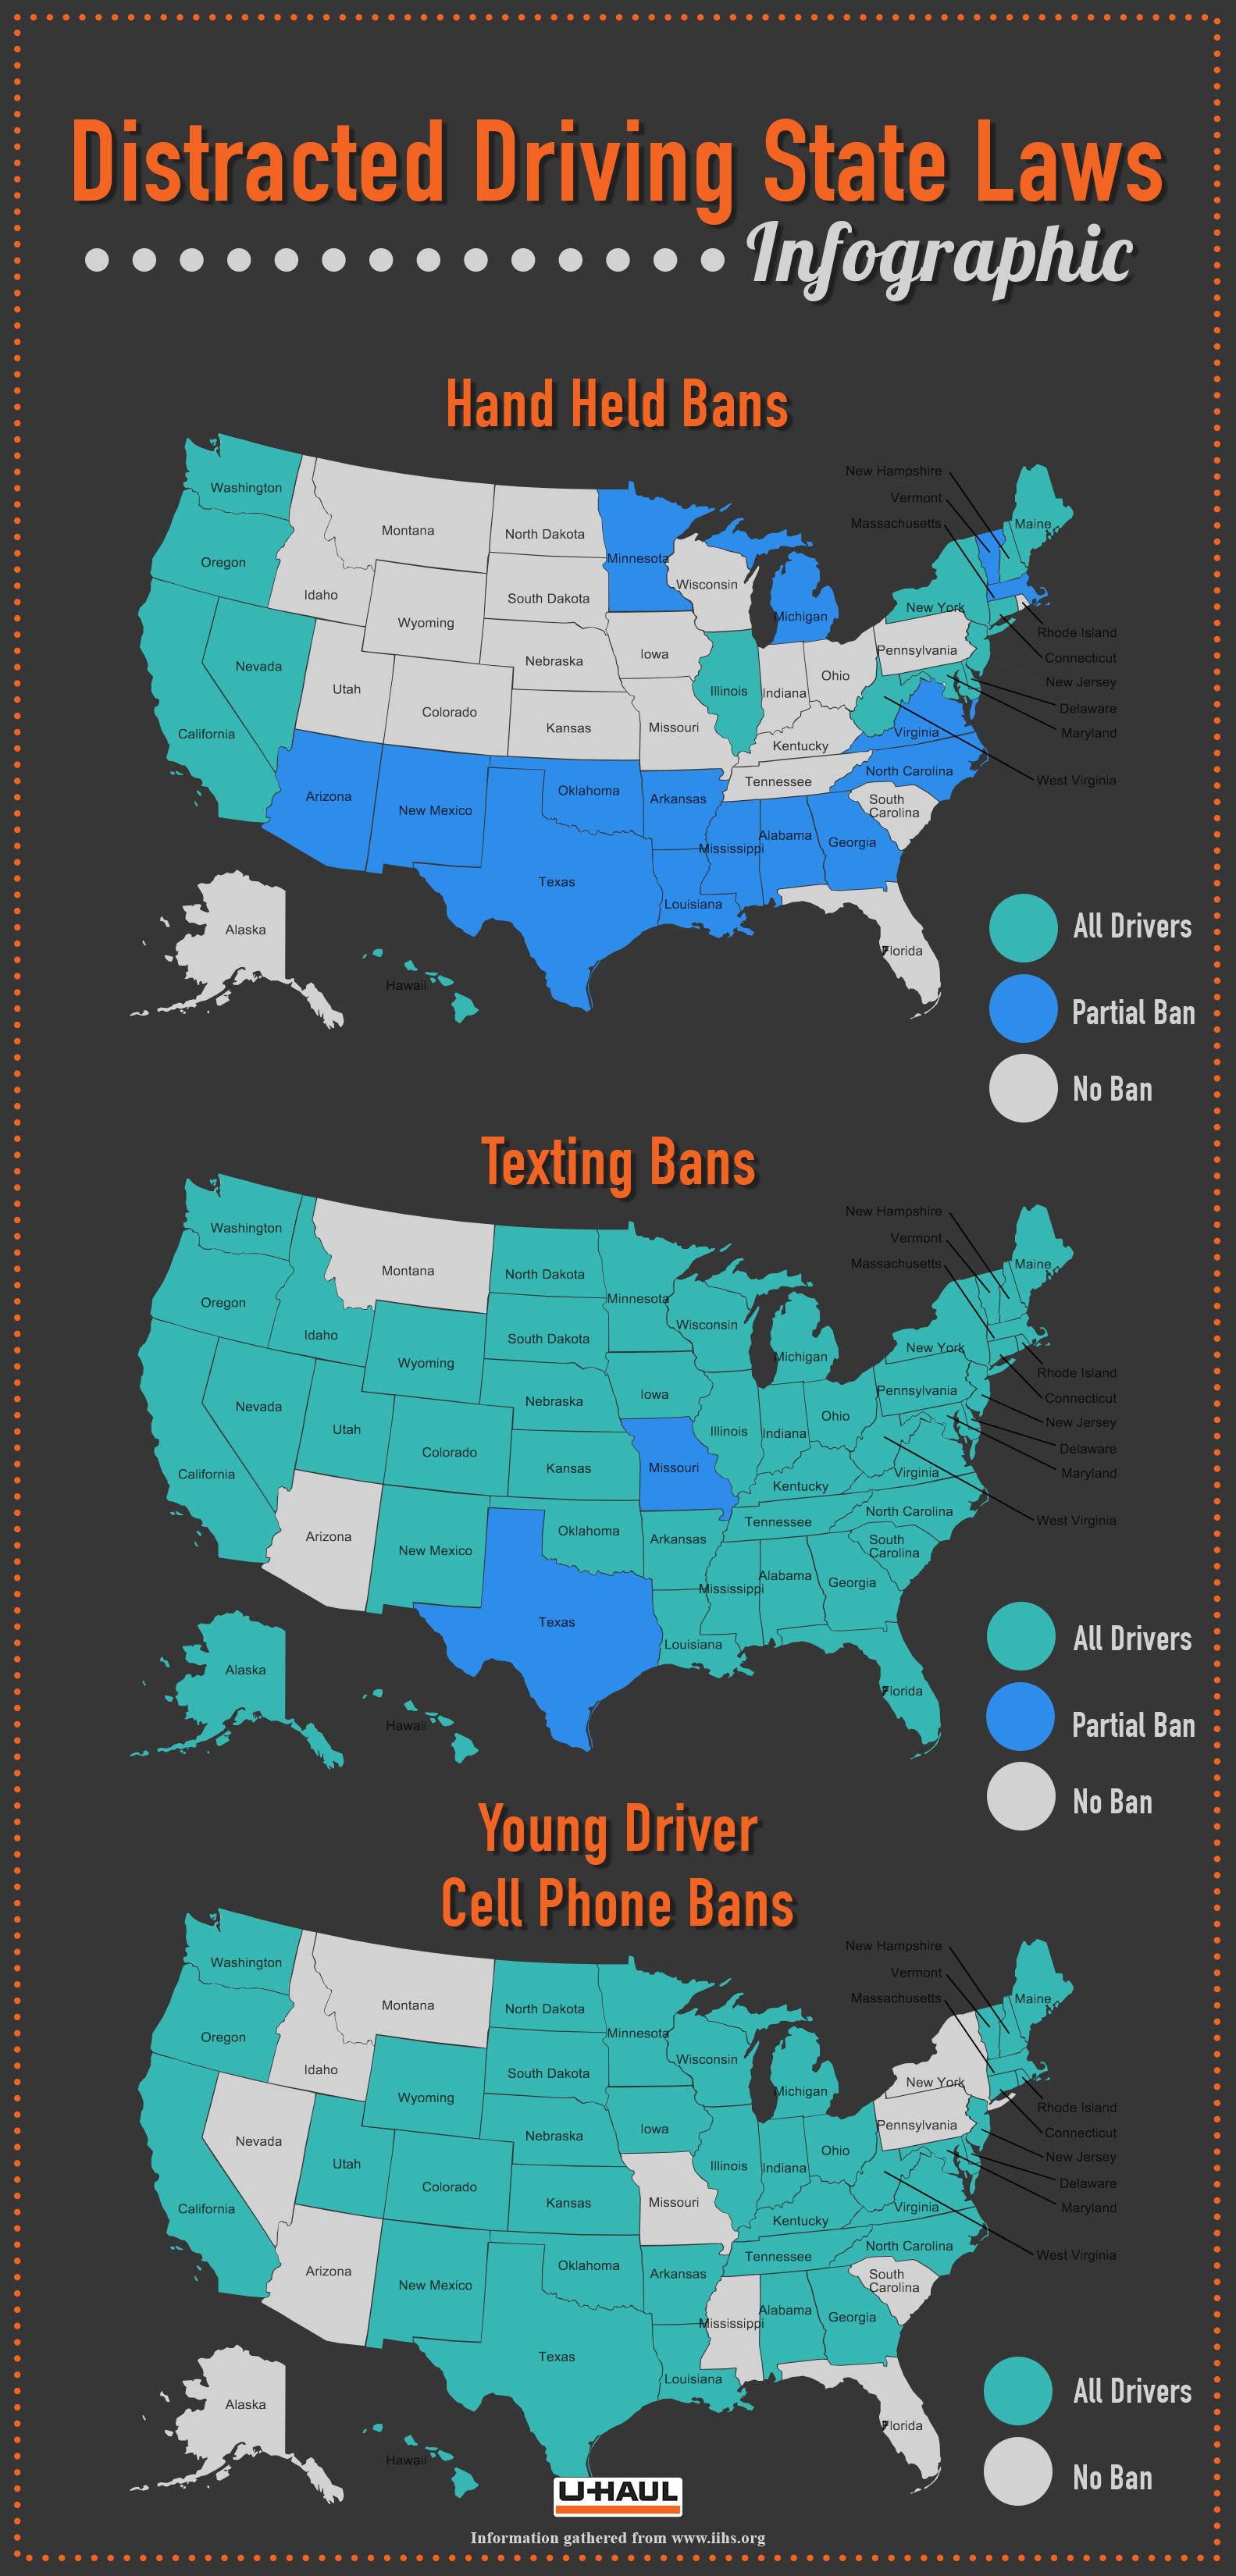 Distracted Driving State laws